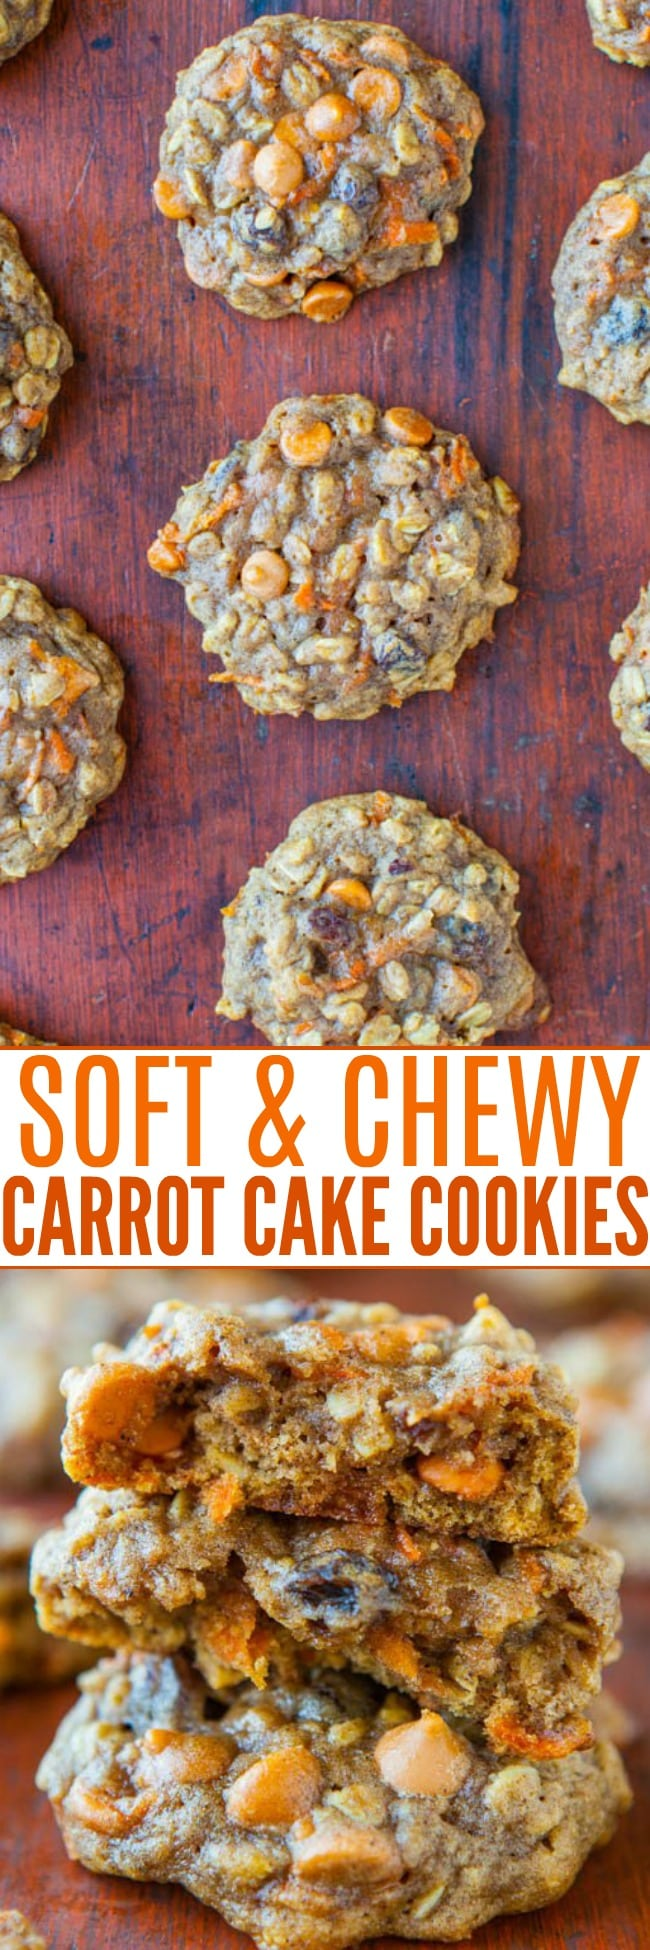 Spiced Carrot Cake Cookies — All the flavors of richly spiced carrot cake, but in cookie form! Soft, chewy, extremely moist, and not at all cakey!